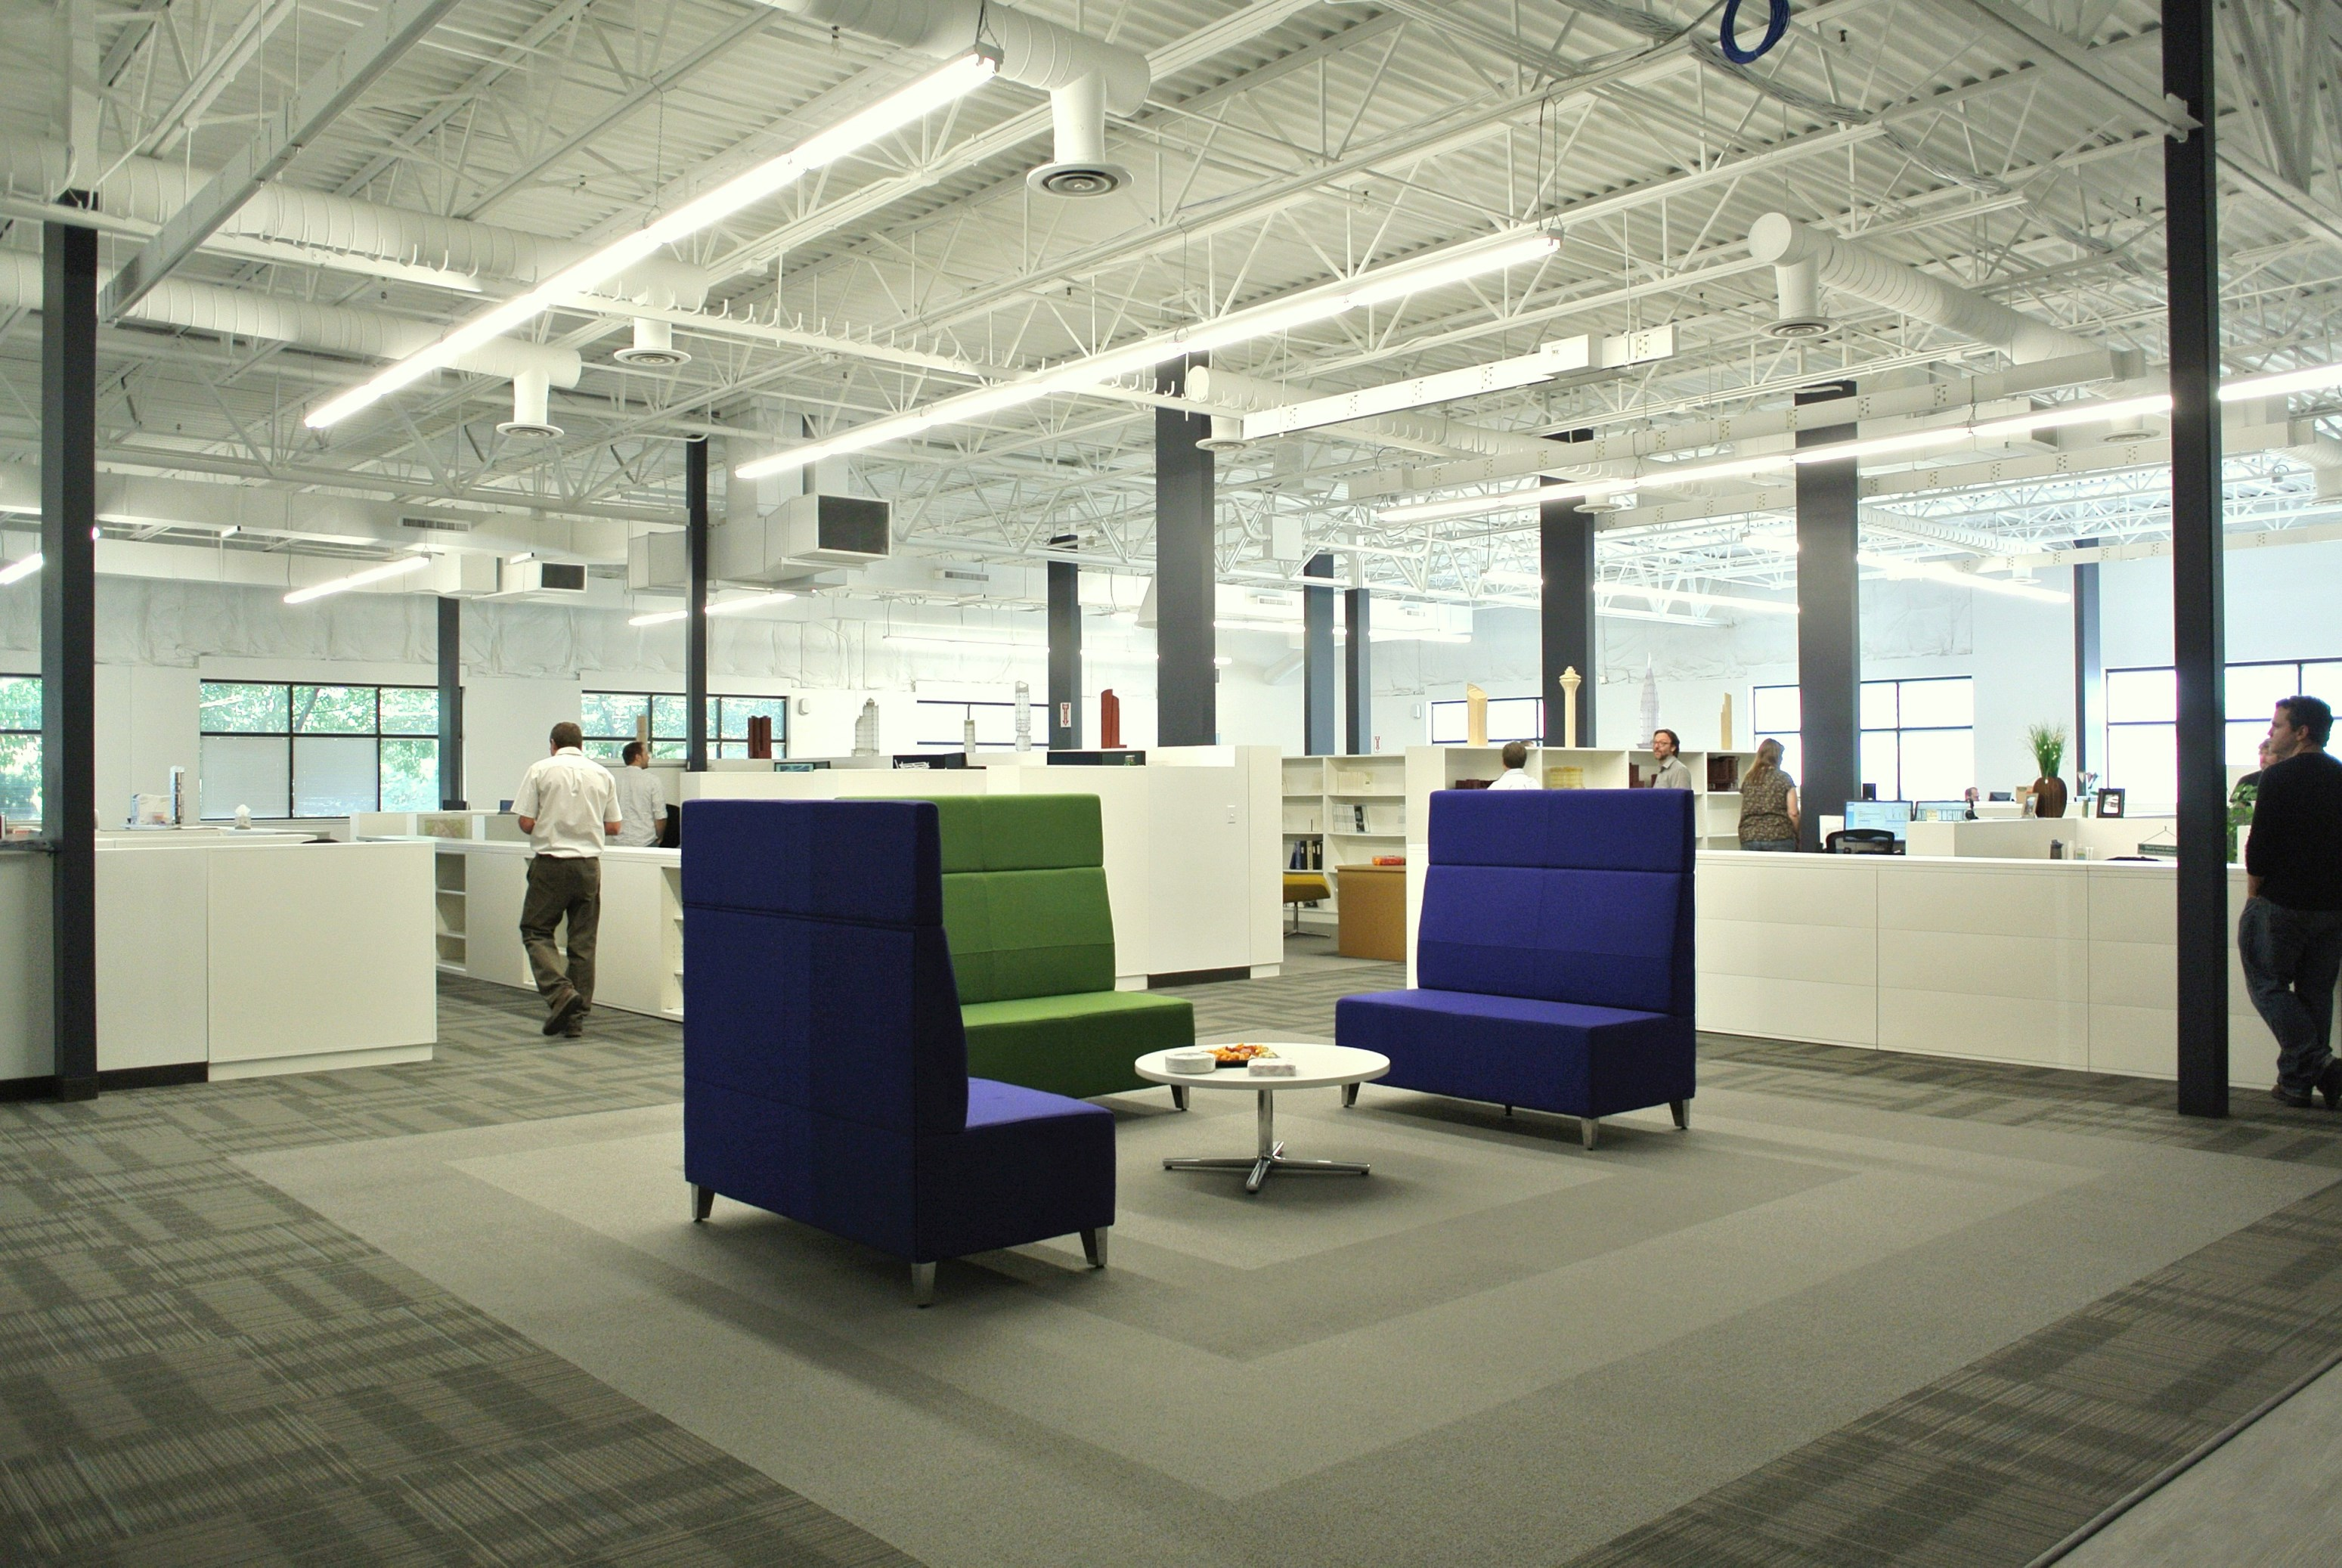 design an office with cpp u0026 burkett design create new offices wind engineering air quality experts